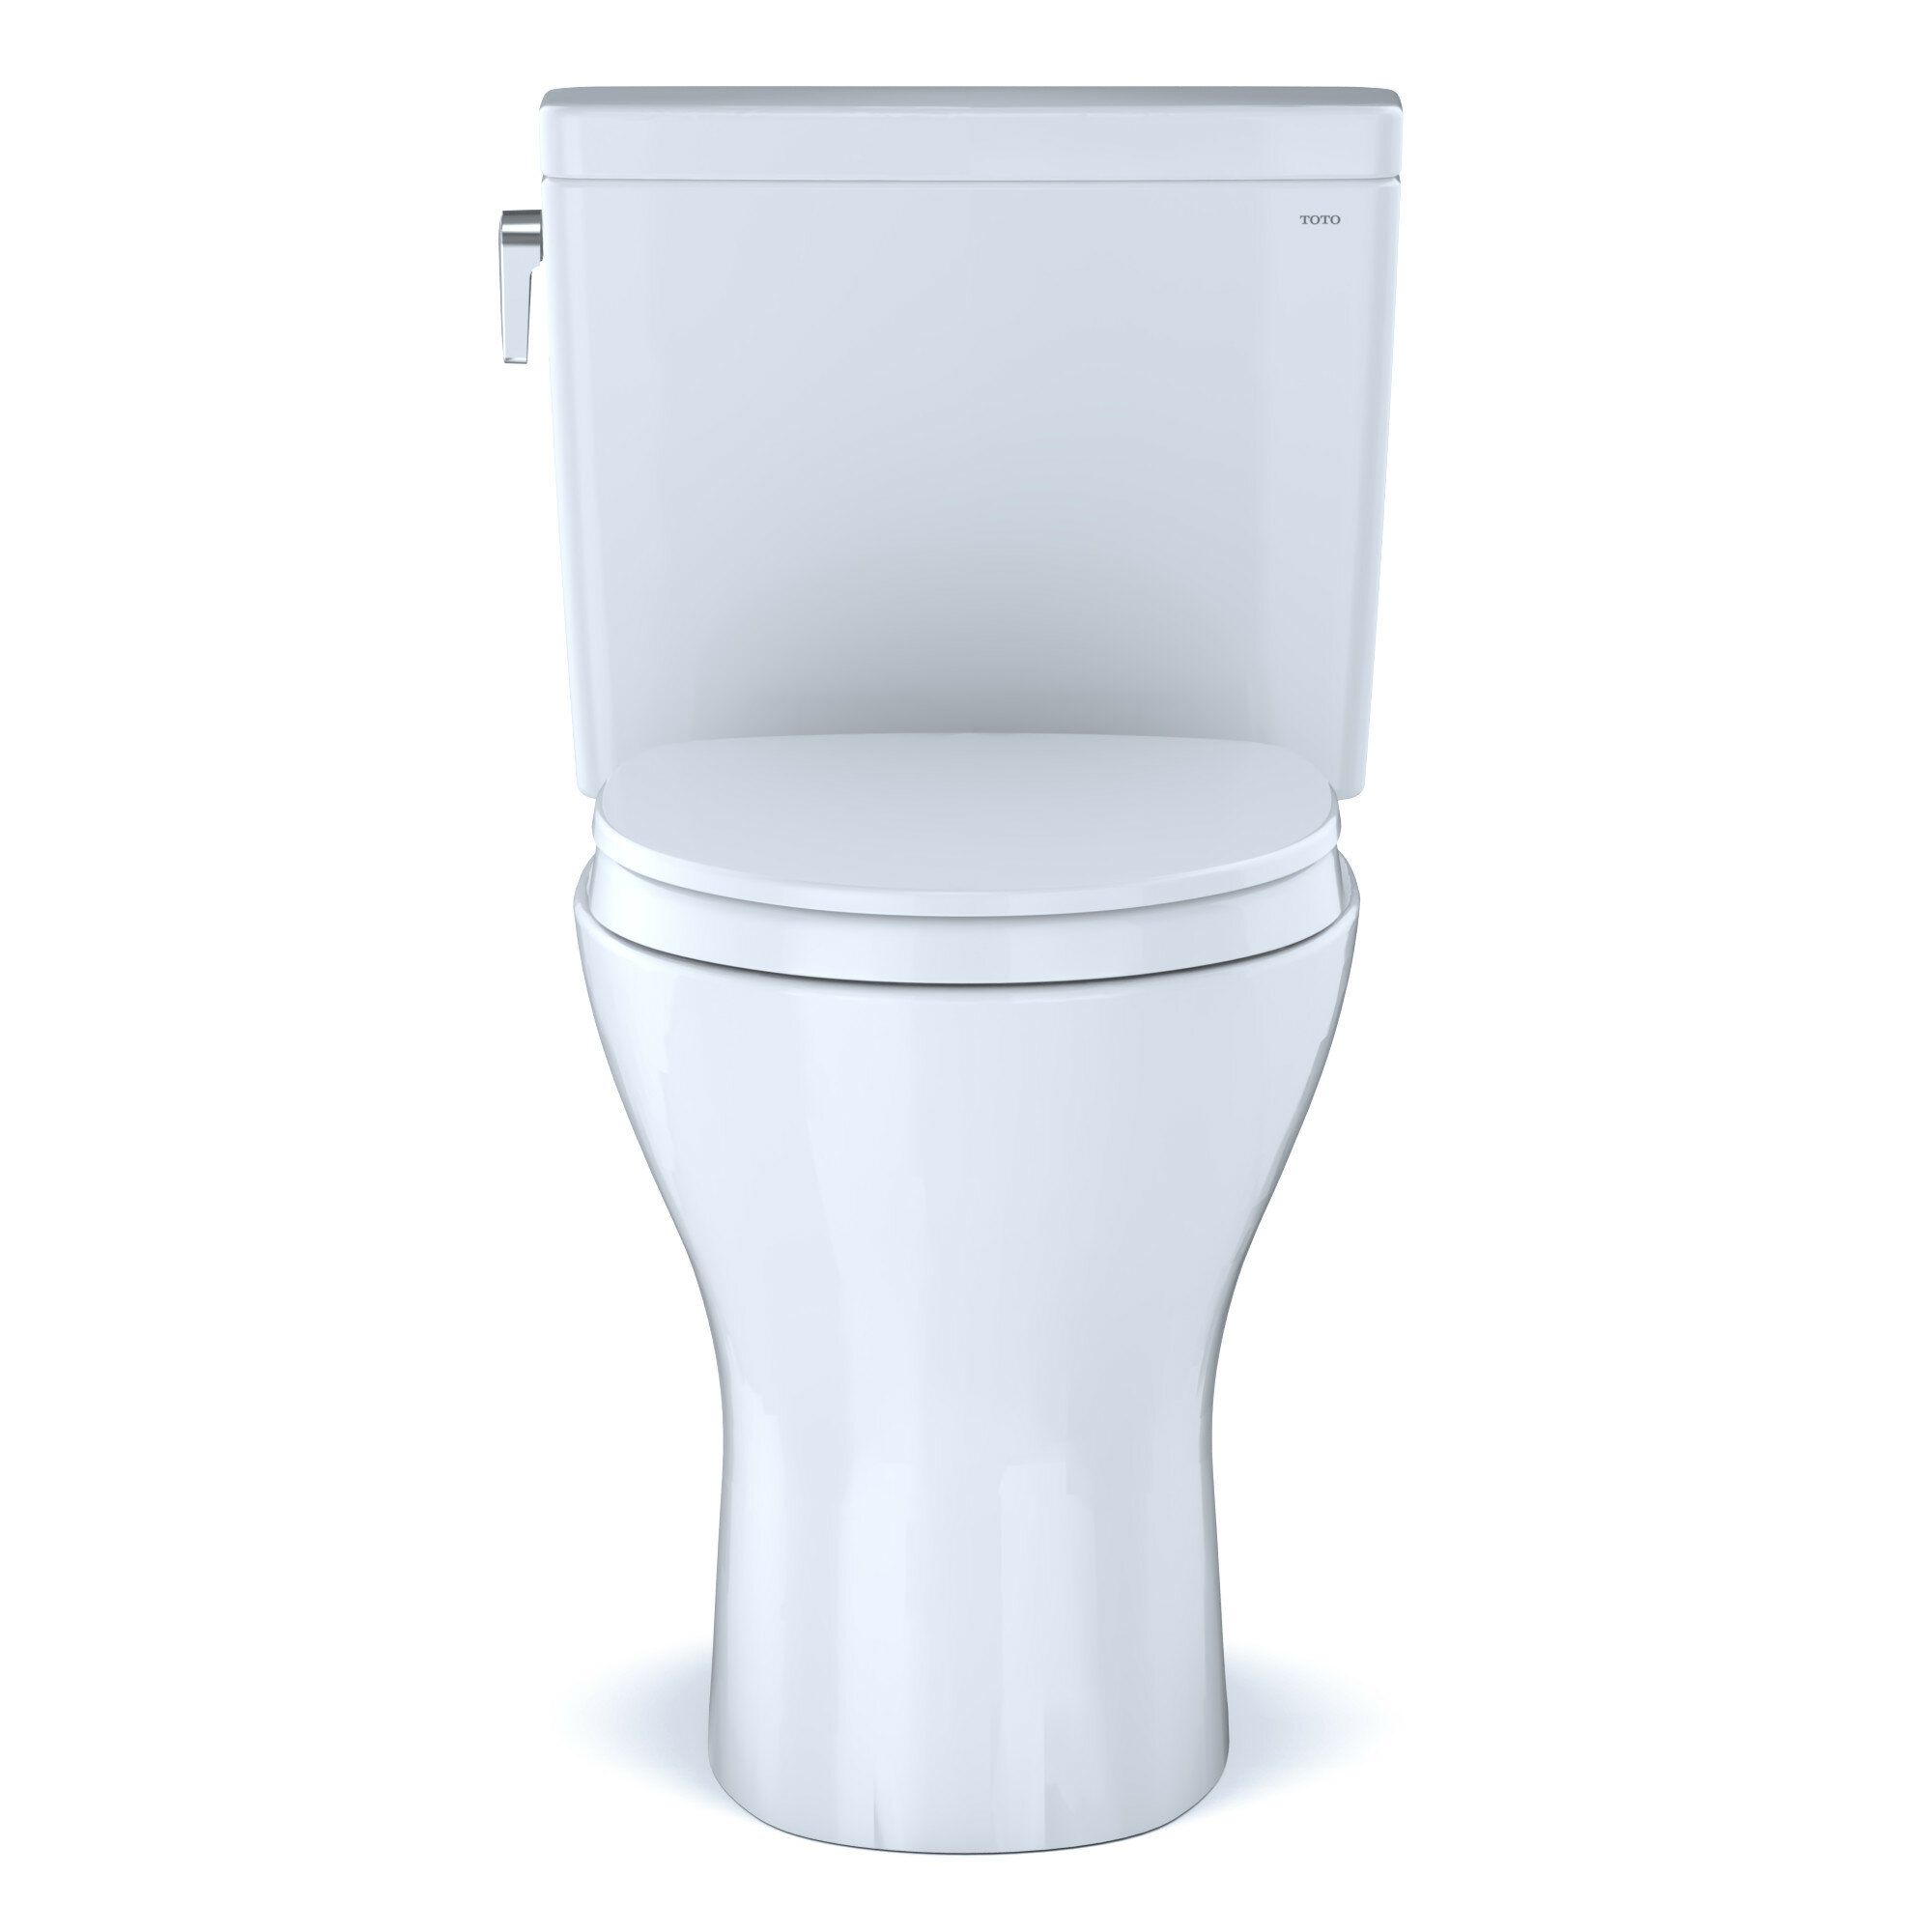 Toto Drake Two Piece Elongated Dual Flush 1 6 And 0 8 Gpf Universal Height Dynamax Tornado Flush Toilet With Cefiontet Wax Ring And Softclose Seat Washlet Ready Reviews Perigold